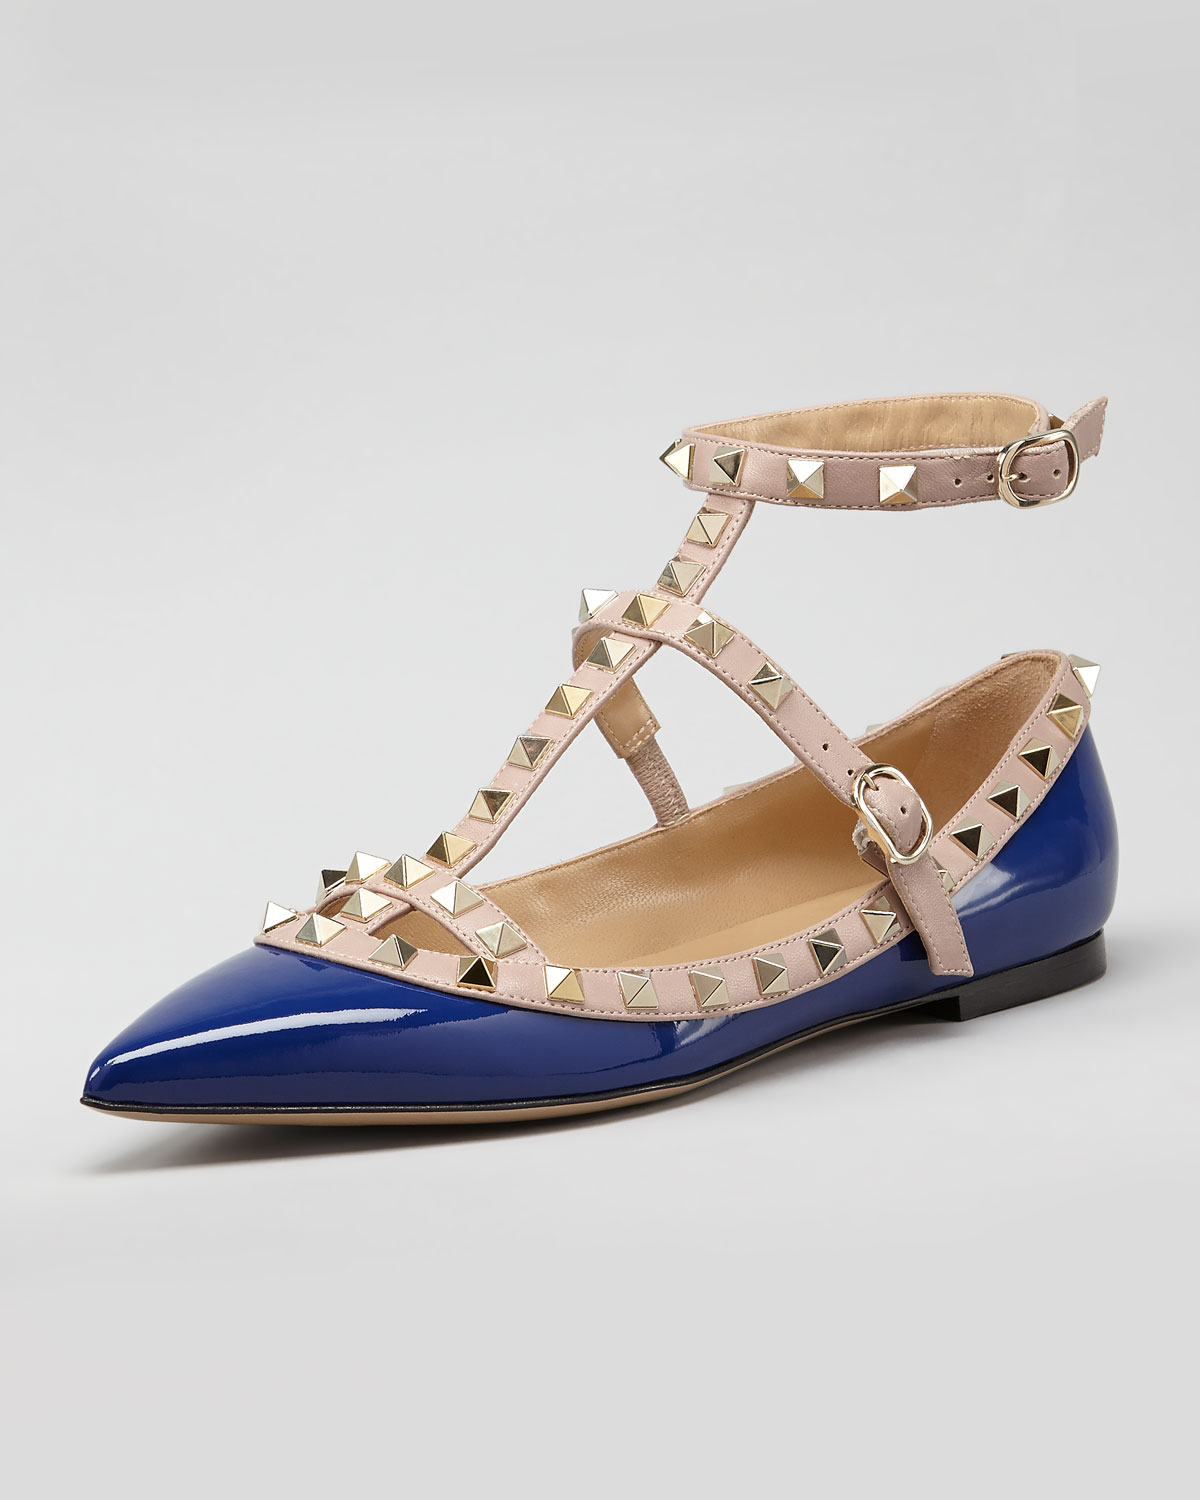 lyst valentino rockstud twotone gladiator ballerina flat bluepoudre in blue. Black Bedroom Furniture Sets. Home Design Ideas